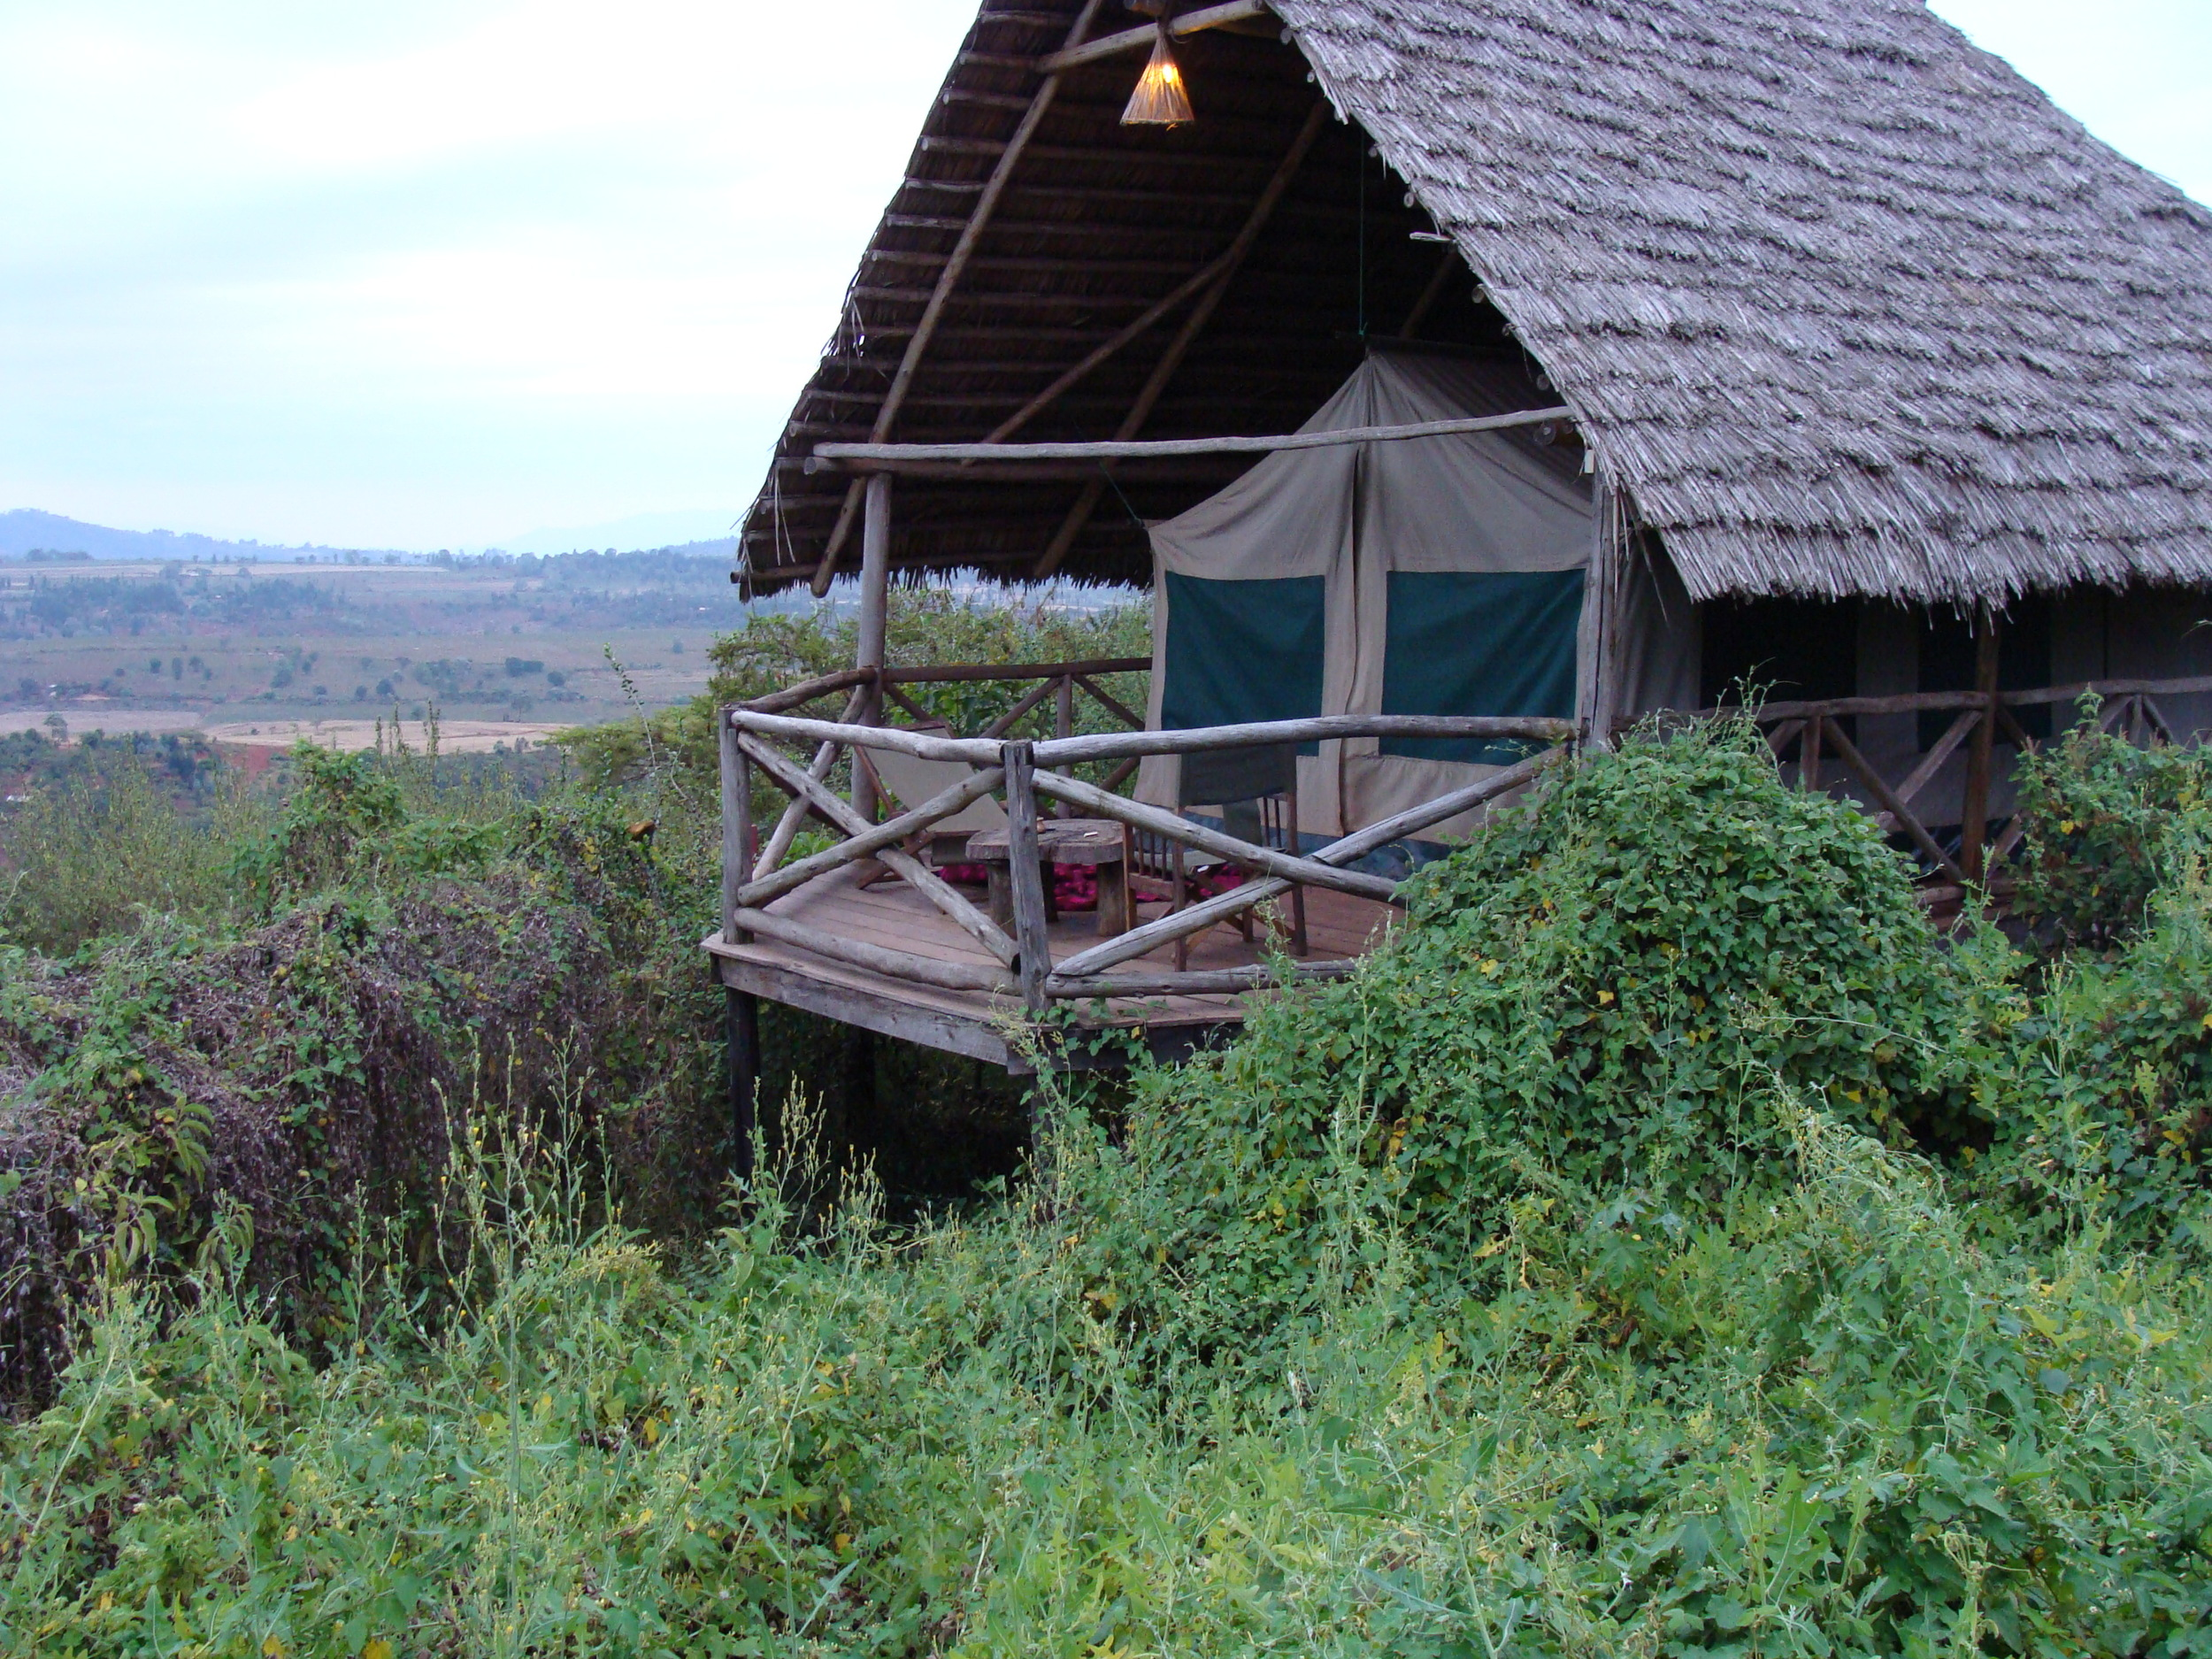 Rhotia Valley Tented Camp... these were no ordinary tents!